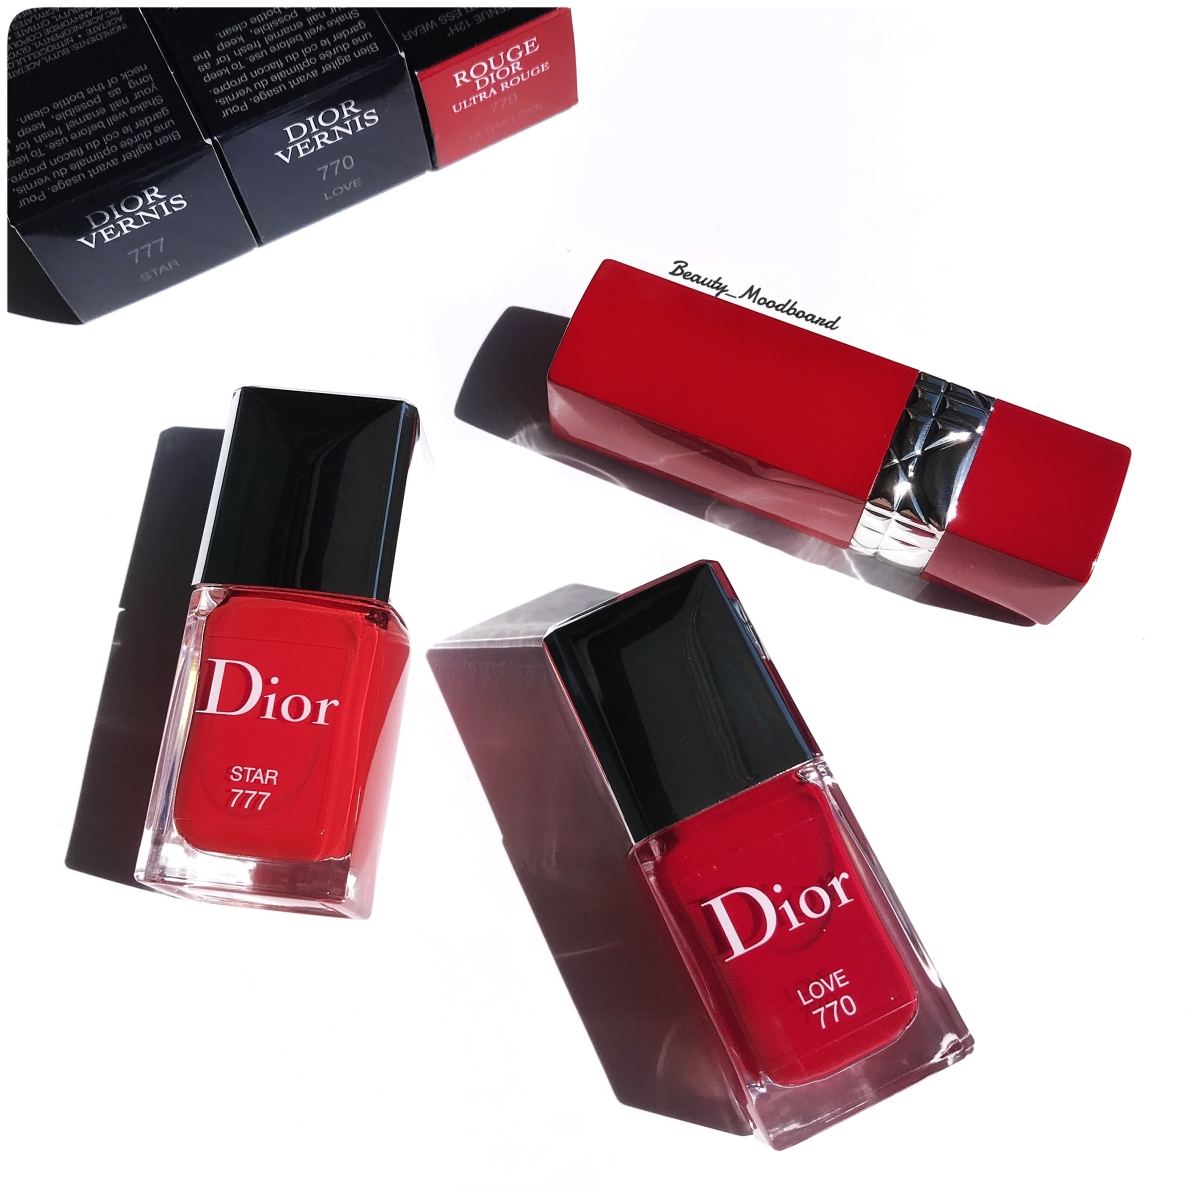 DIOROUGE Ultra Rouge Mon Haul #reddingue !